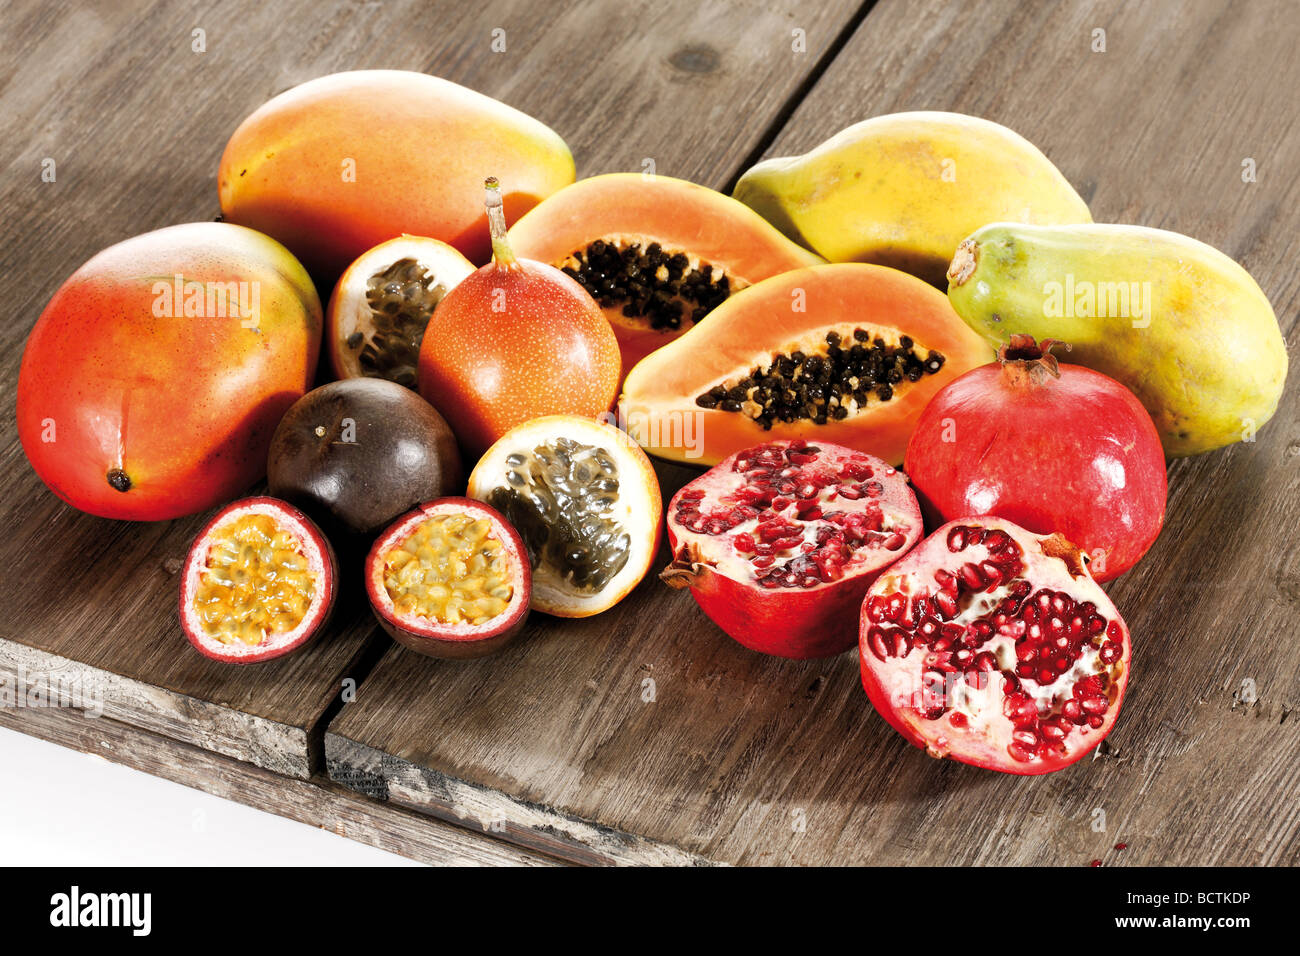 exotic fruits mango passionfruit grenadilla papaya pomegranate stock photo 25128370 alamy. Black Bedroom Furniture Sets. Home Design Ideas